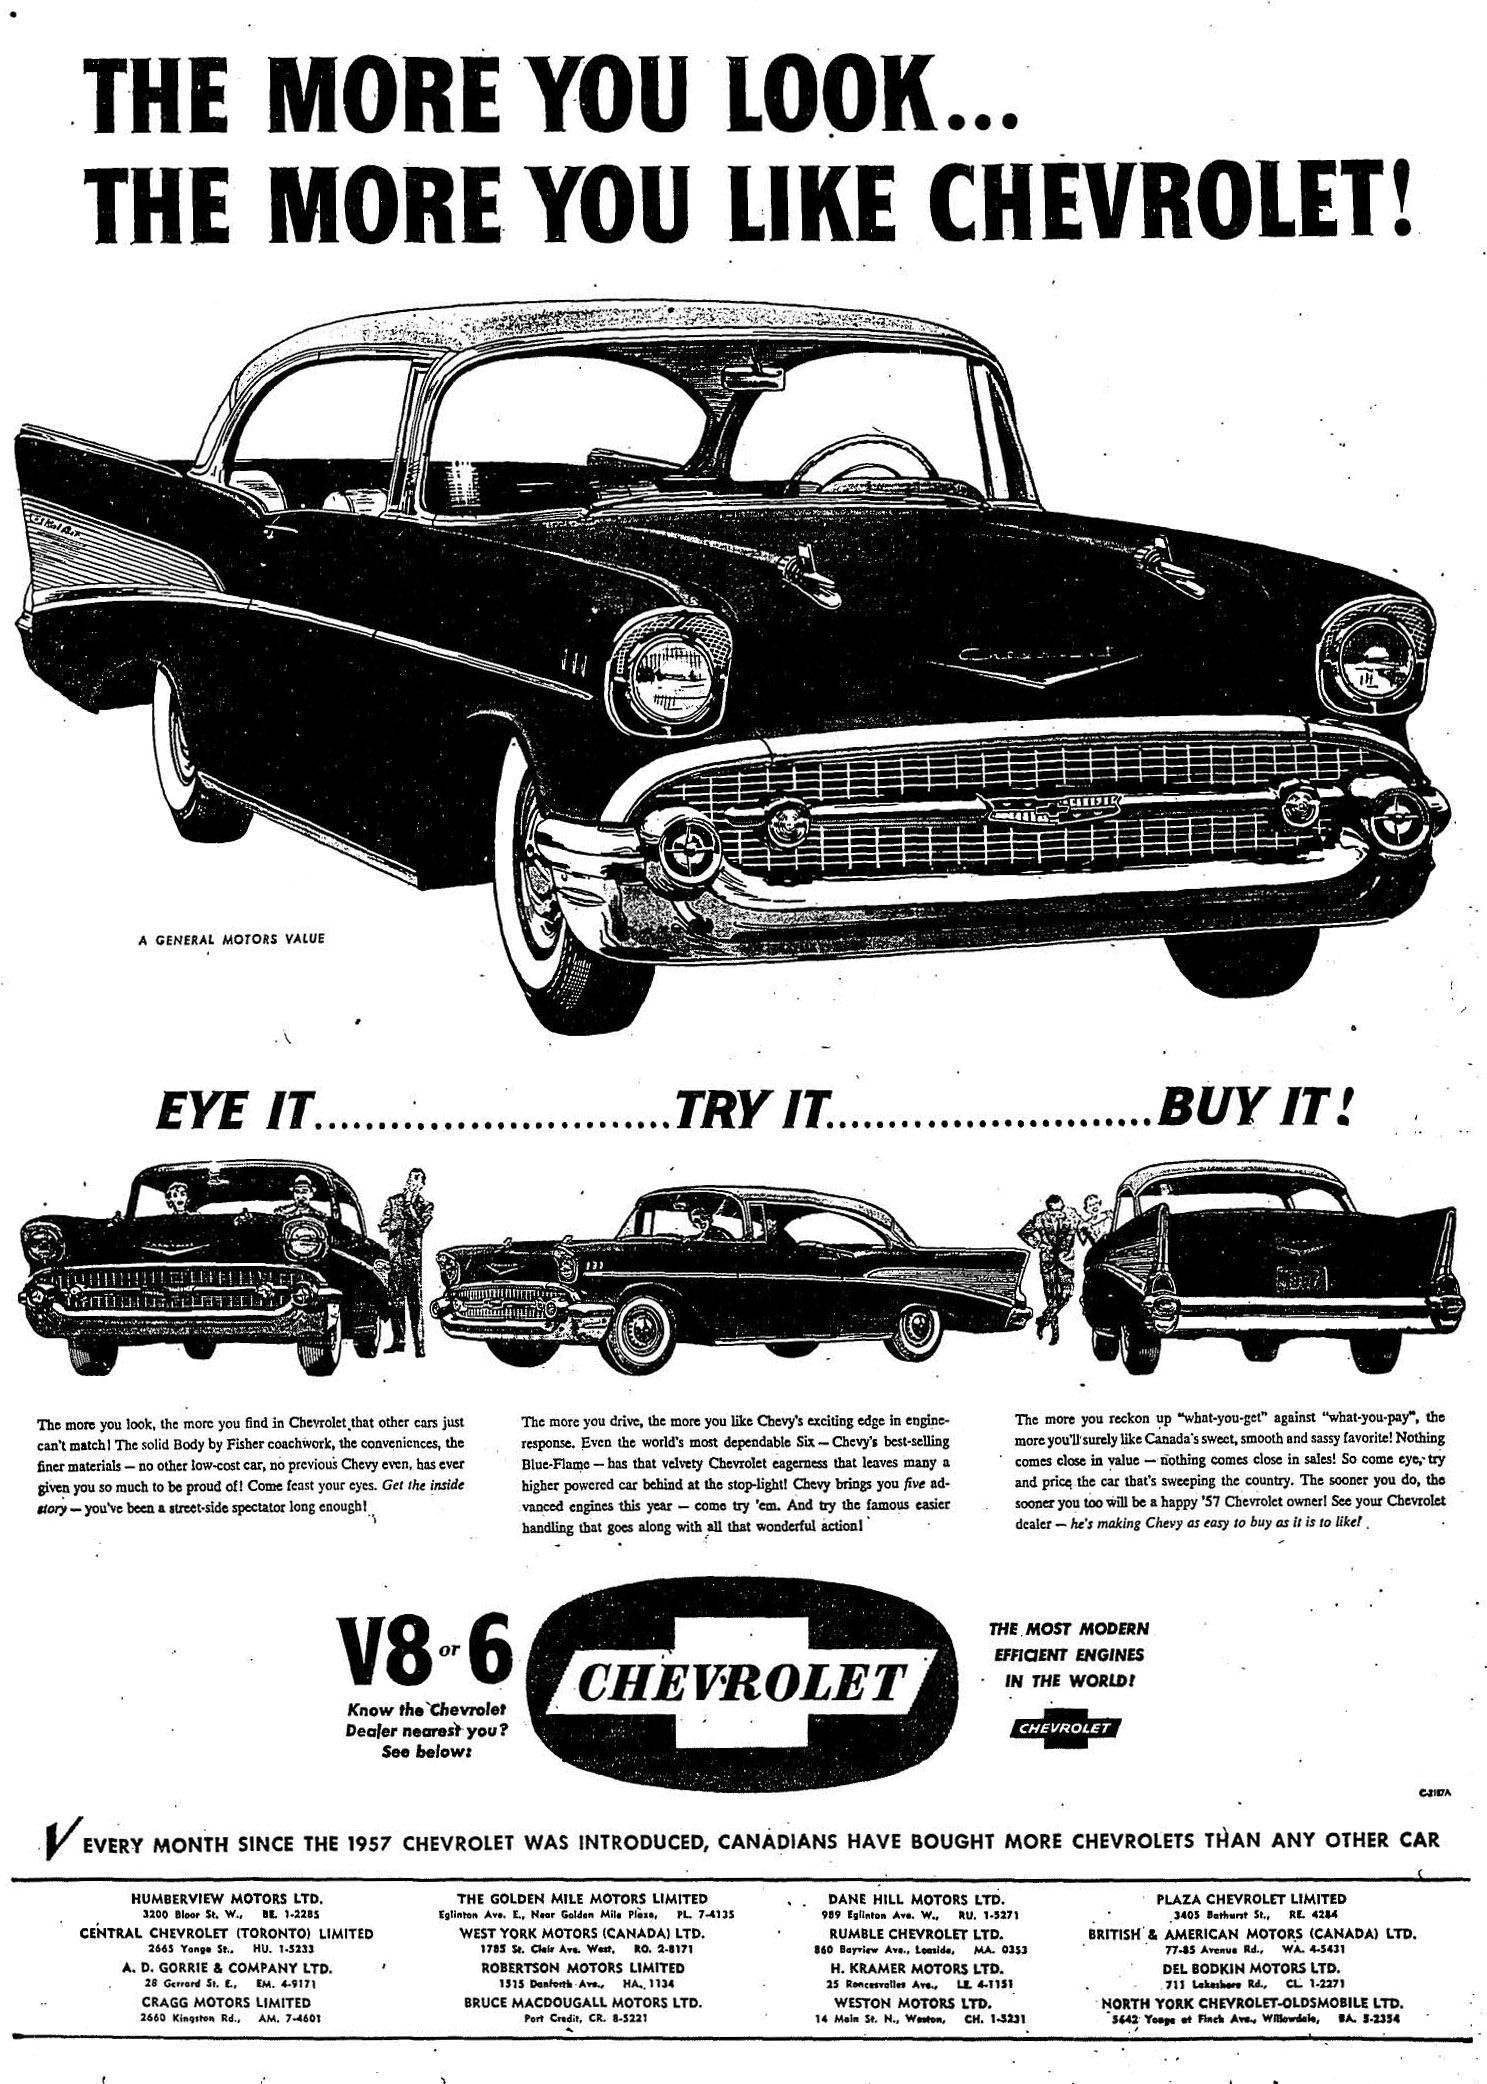 the more you like chevrolet in 57 source the globe and mail march rh pinterest com